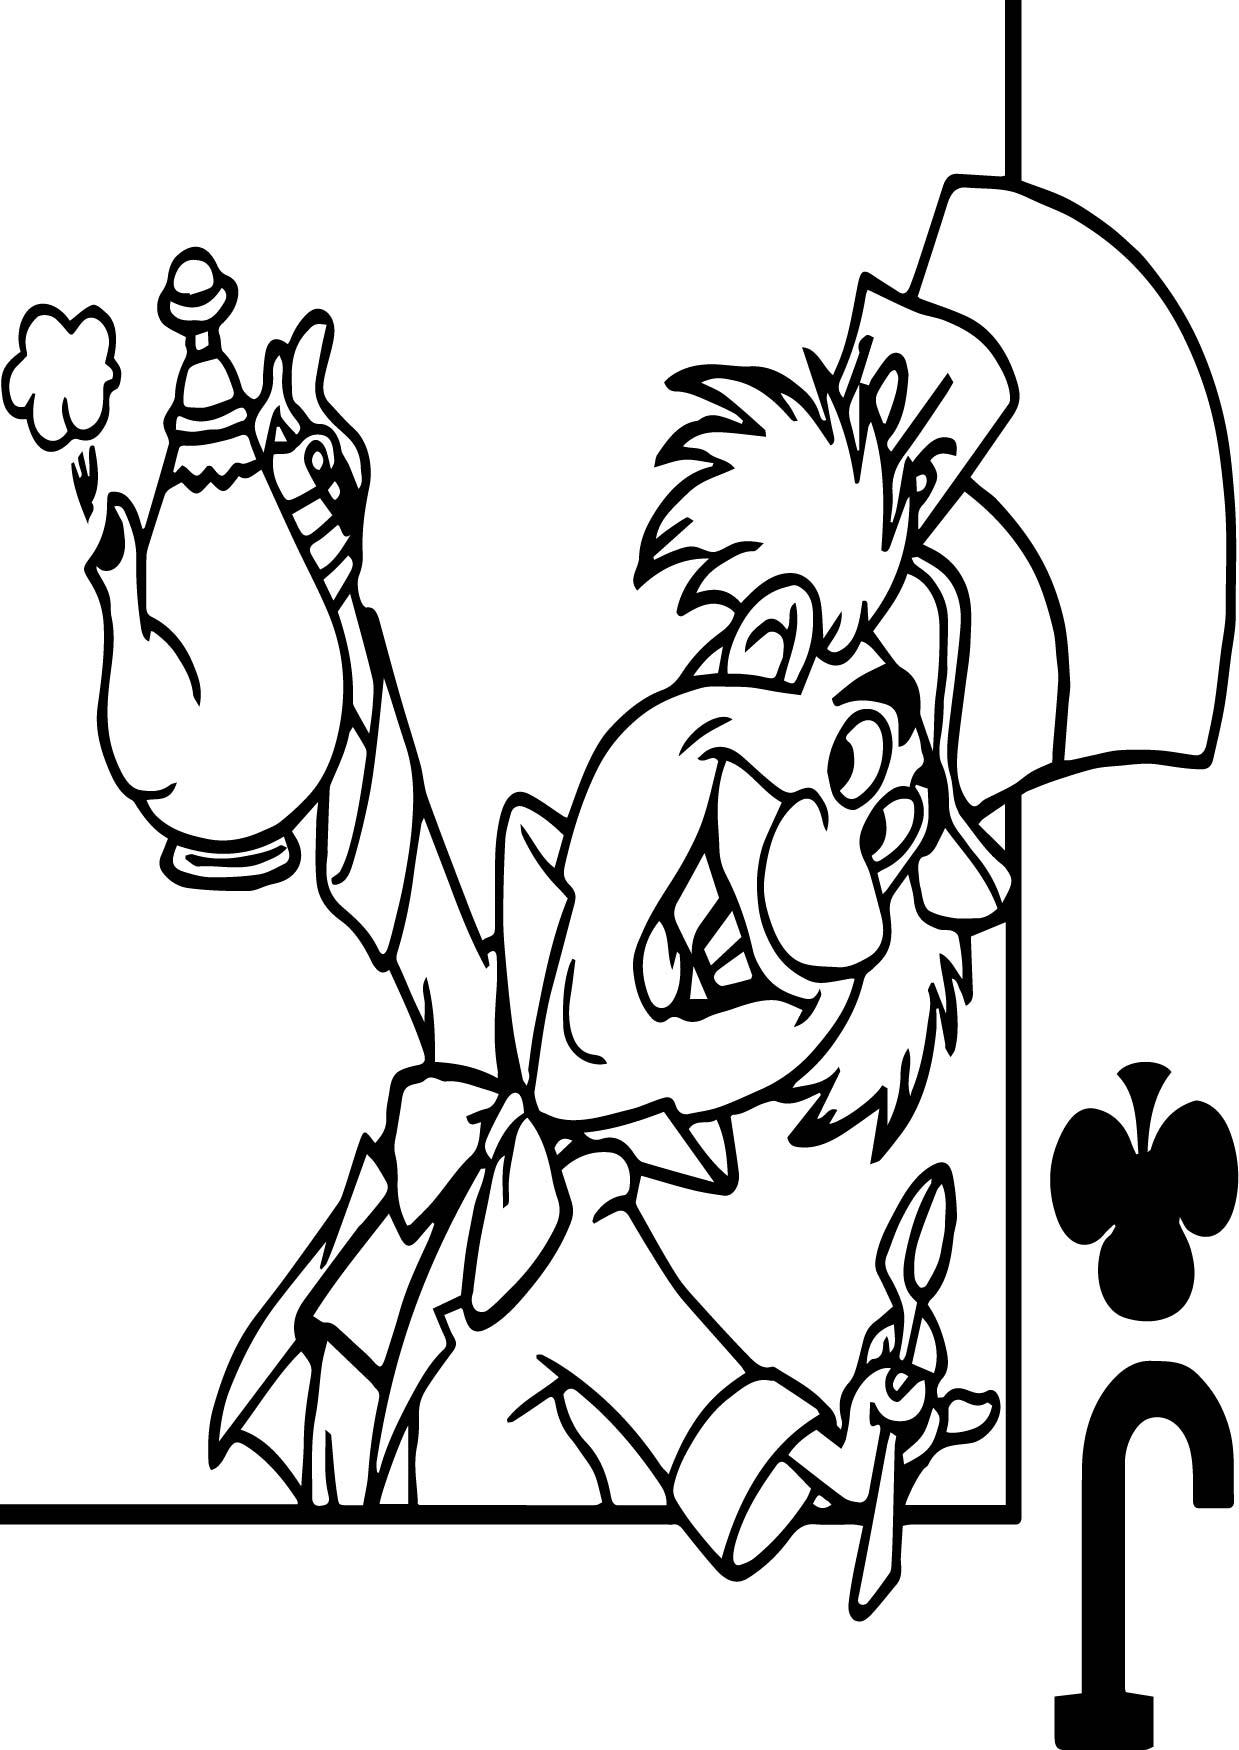 alice in the wonderland joker coloring page wecoloringpage